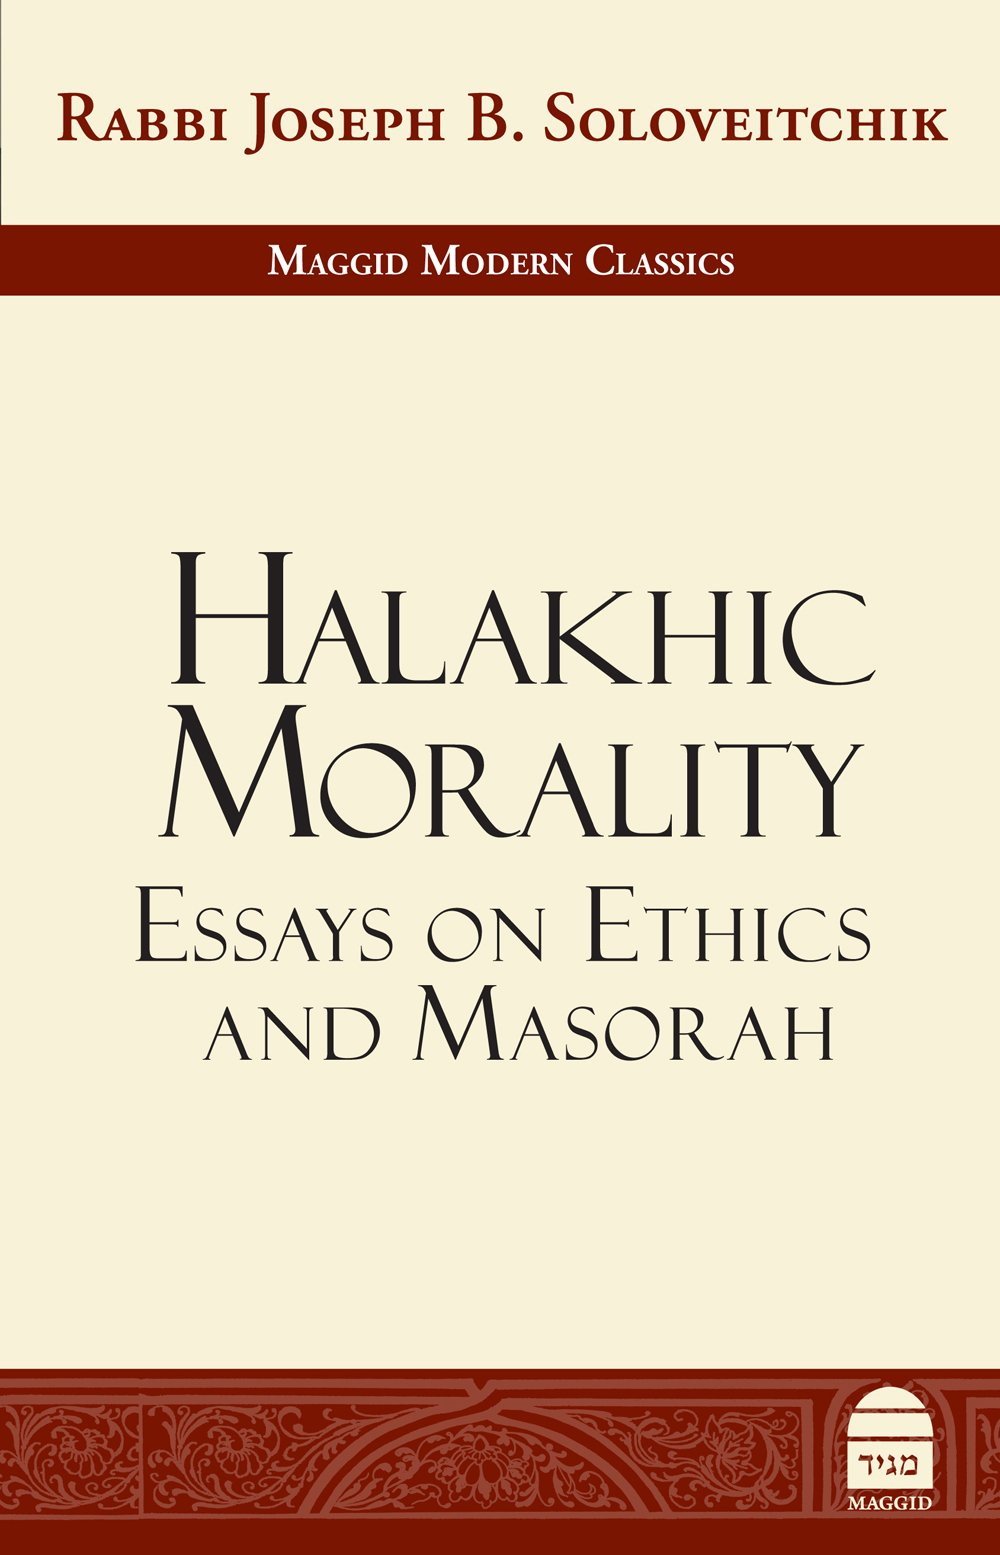 halakhic morality essays on ethics and masorah rabbi joseph b halakhic morality essays on ethics and masorah rabbi joseph b soloveitchik joel b wolowelsky reuven ziegler 9781592644636 com books